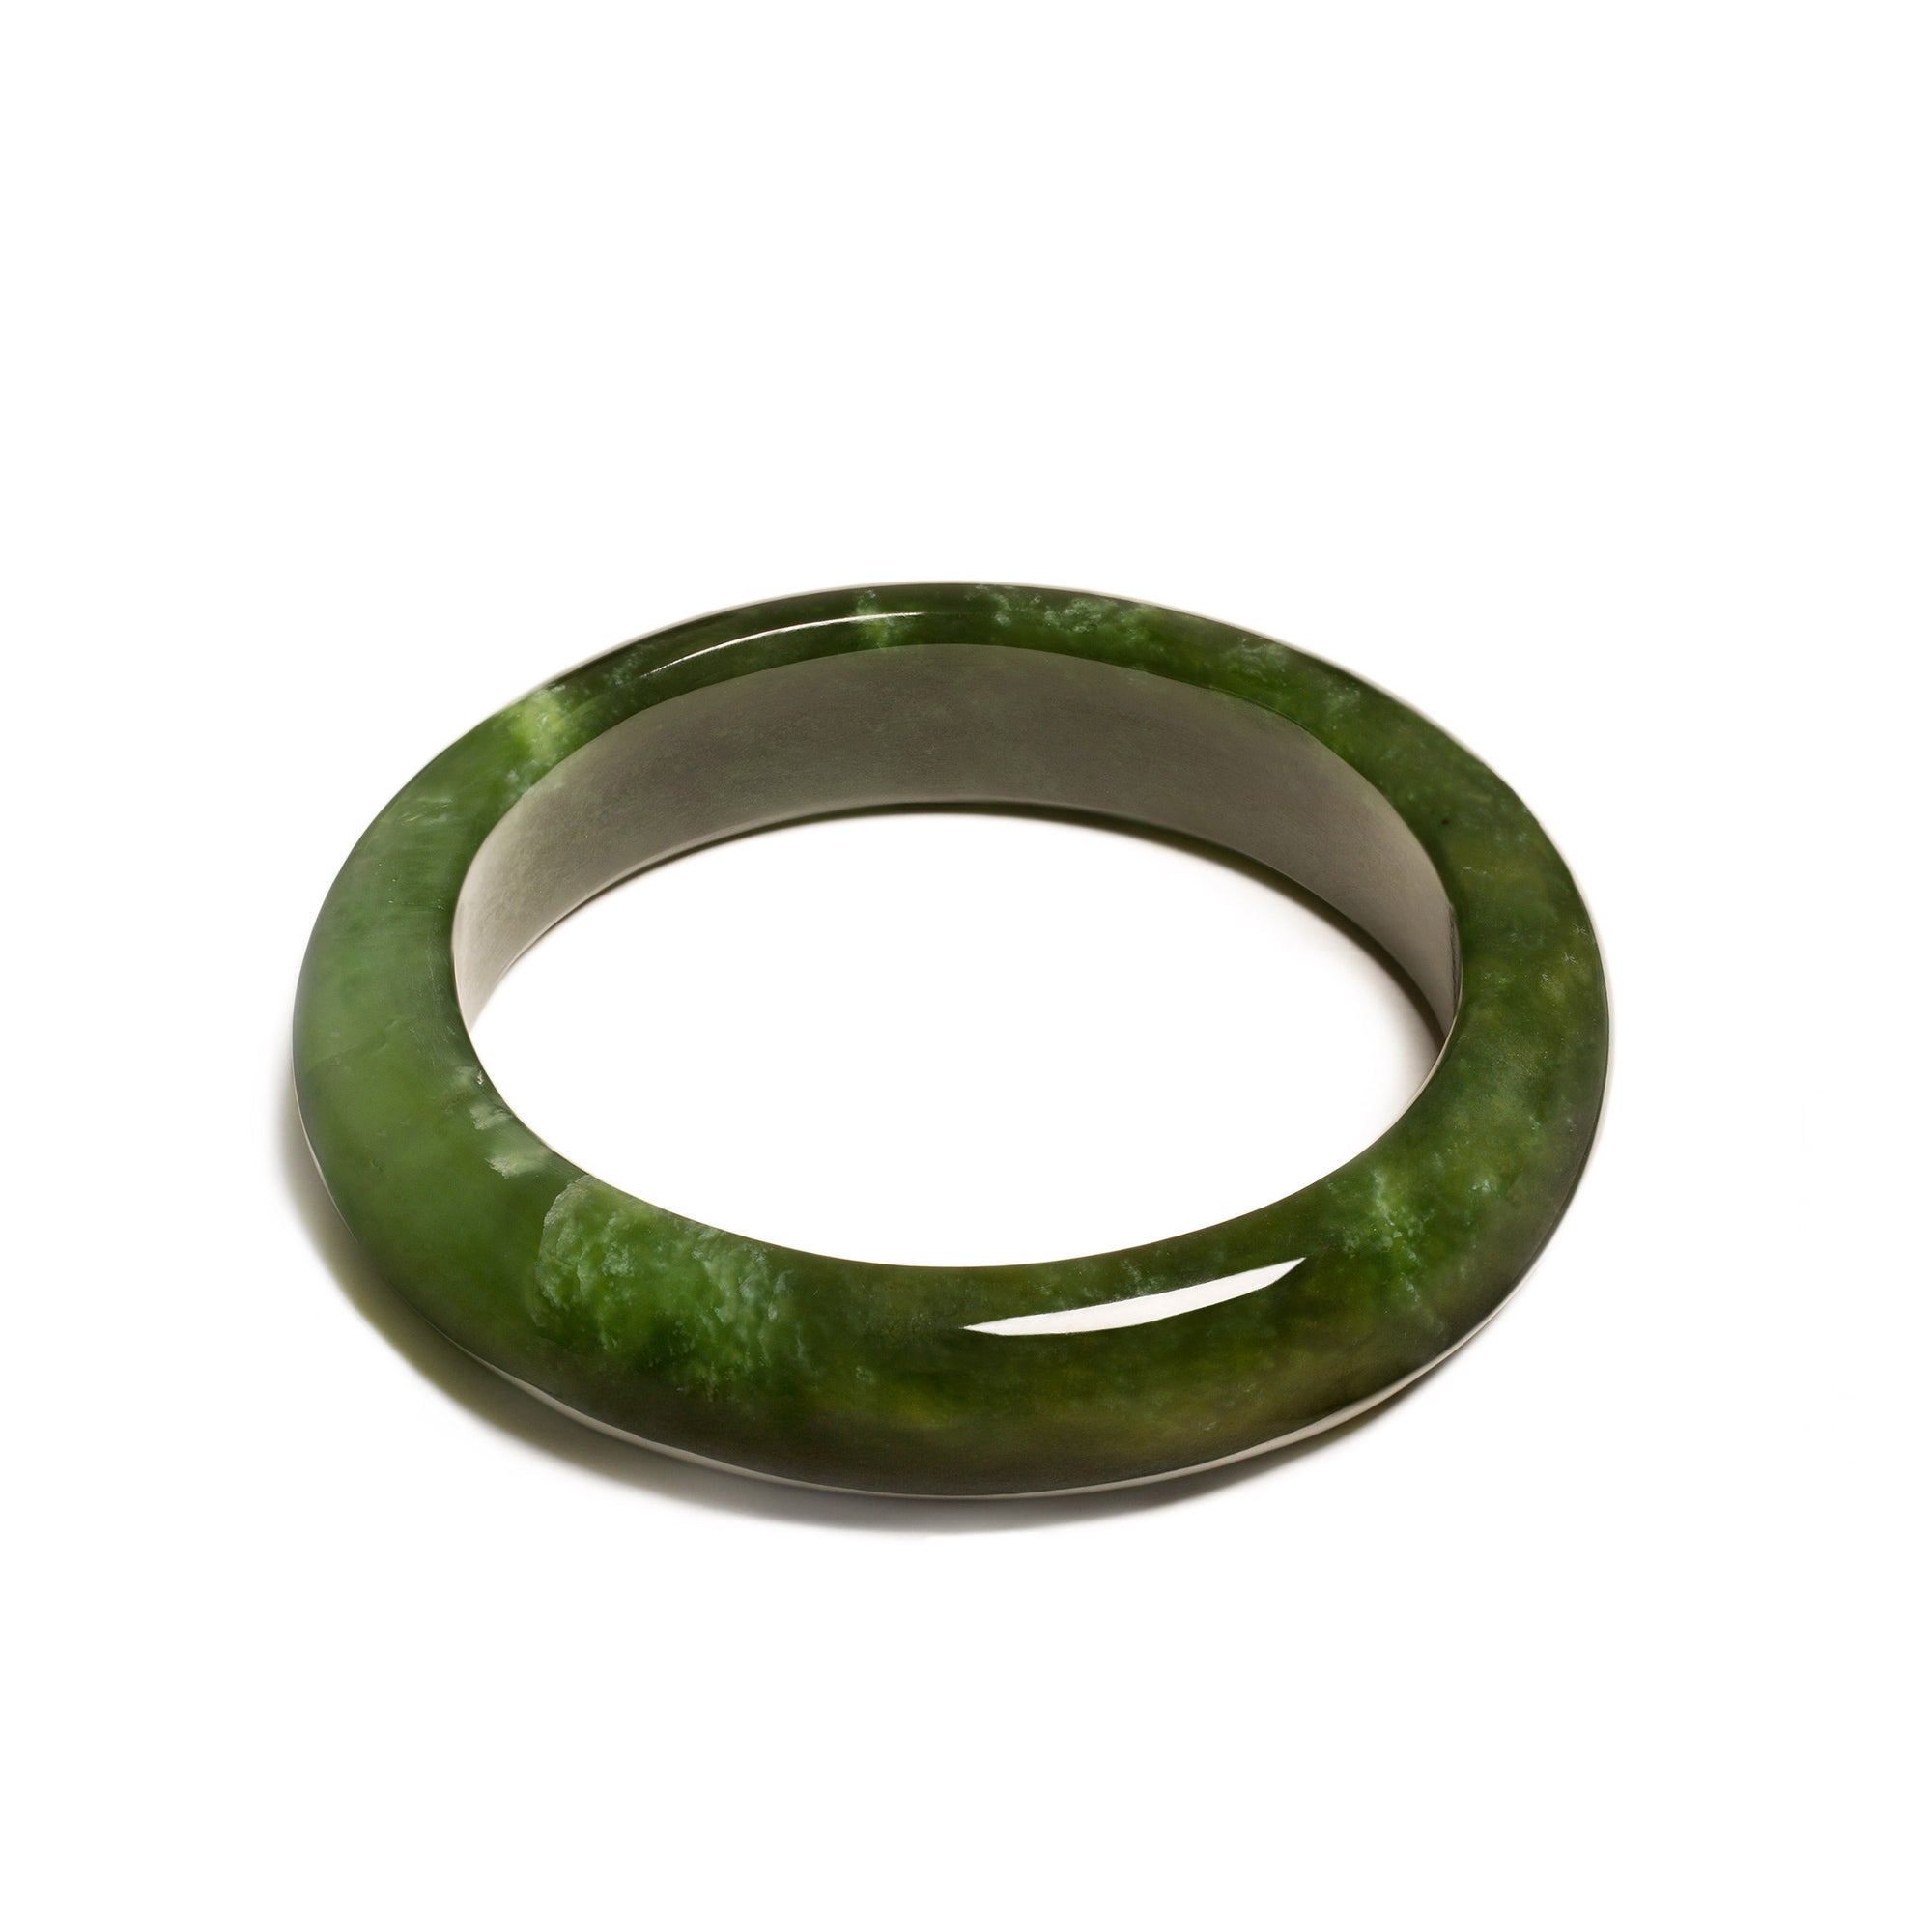 New Zealand Pounamu Dark Bangle (60mm)